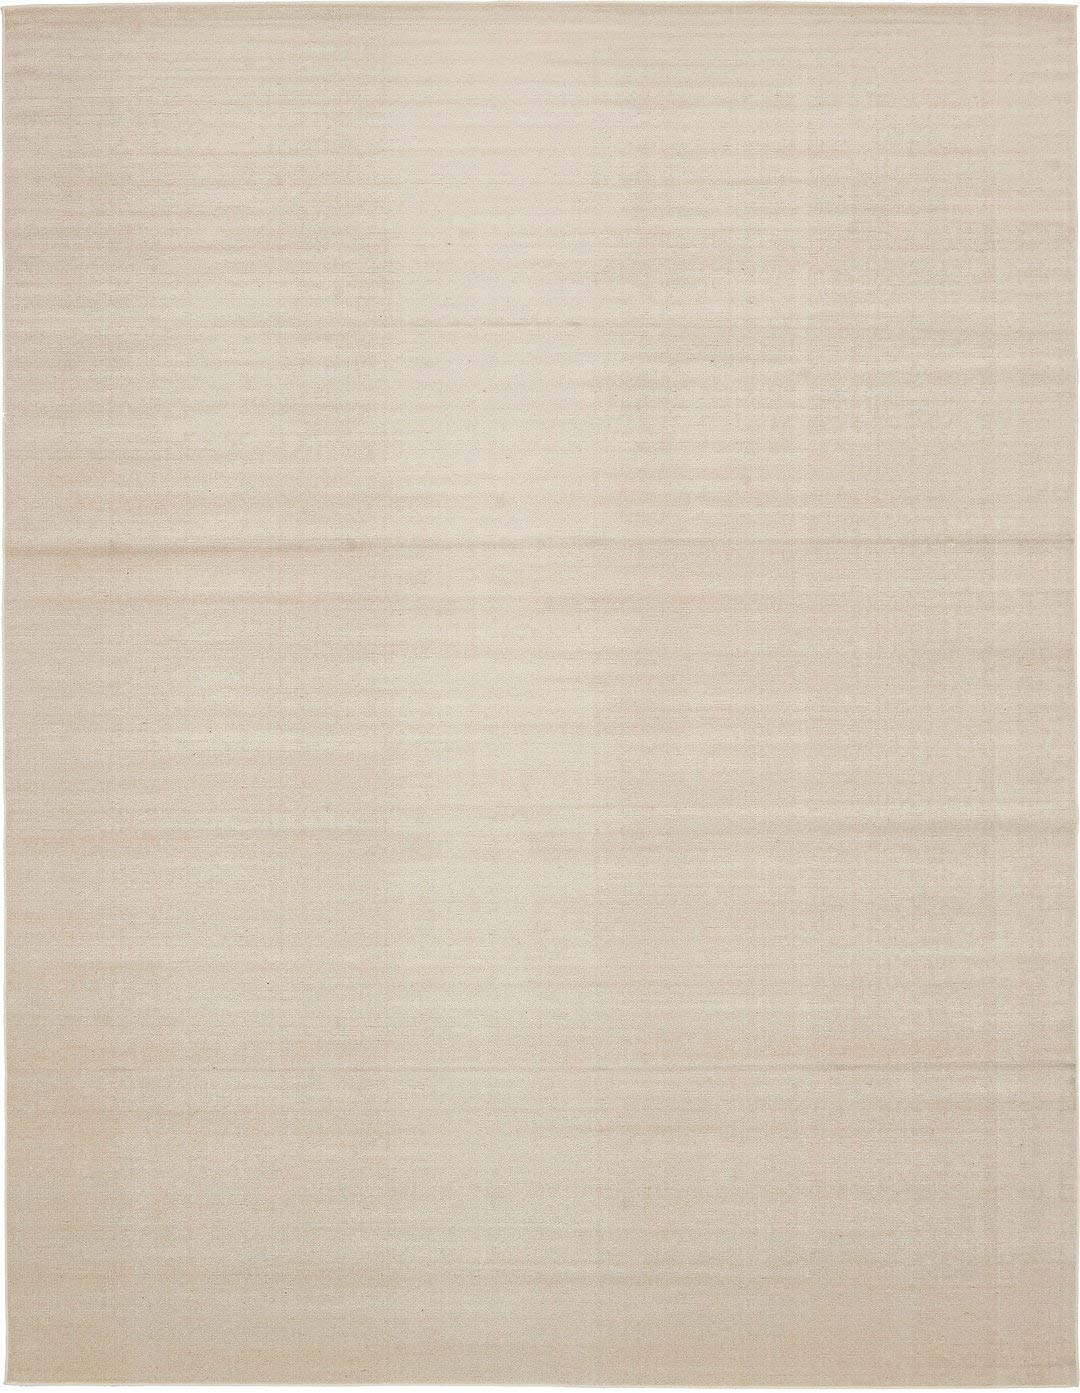 A2Z Rug Modern Caen Collection Rugs Beige 10' x 13' -Feet Area rug